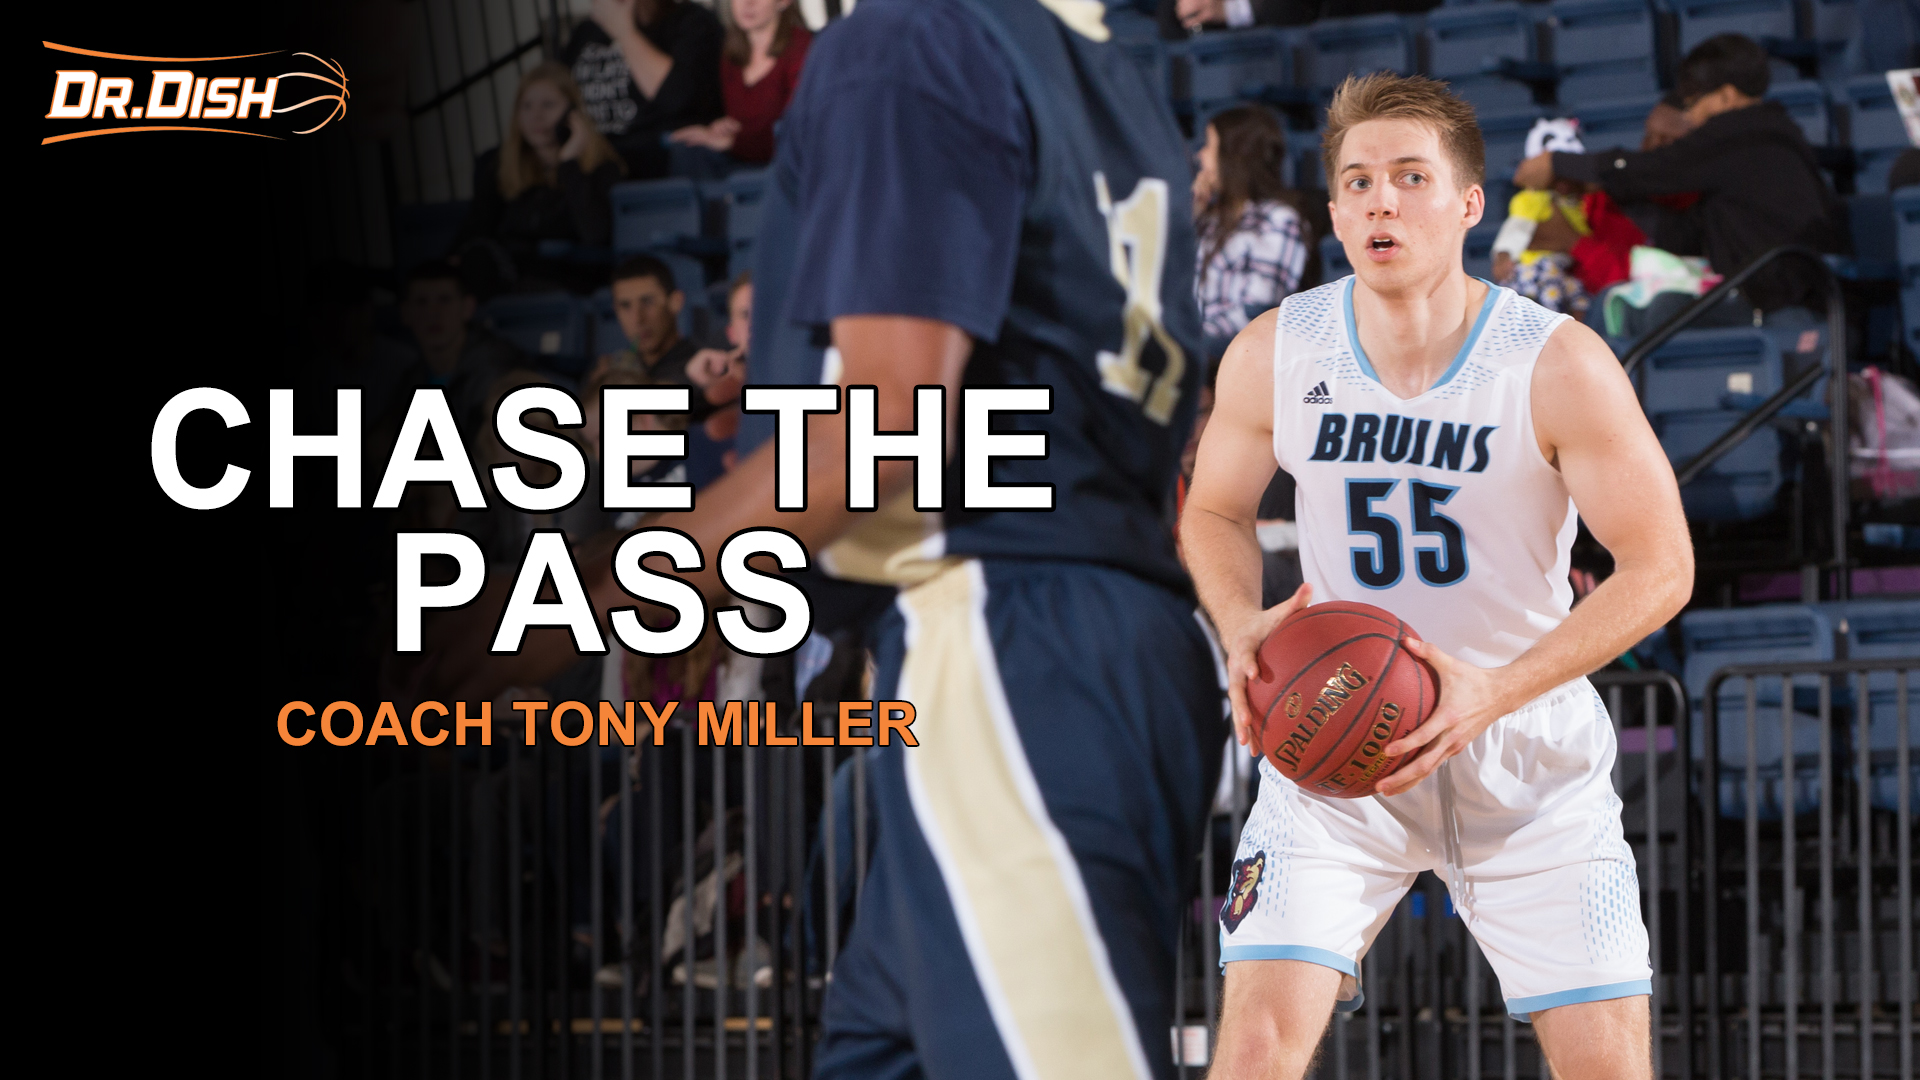 Basketball Drills: Chase the Pass with Coach Tony Miller